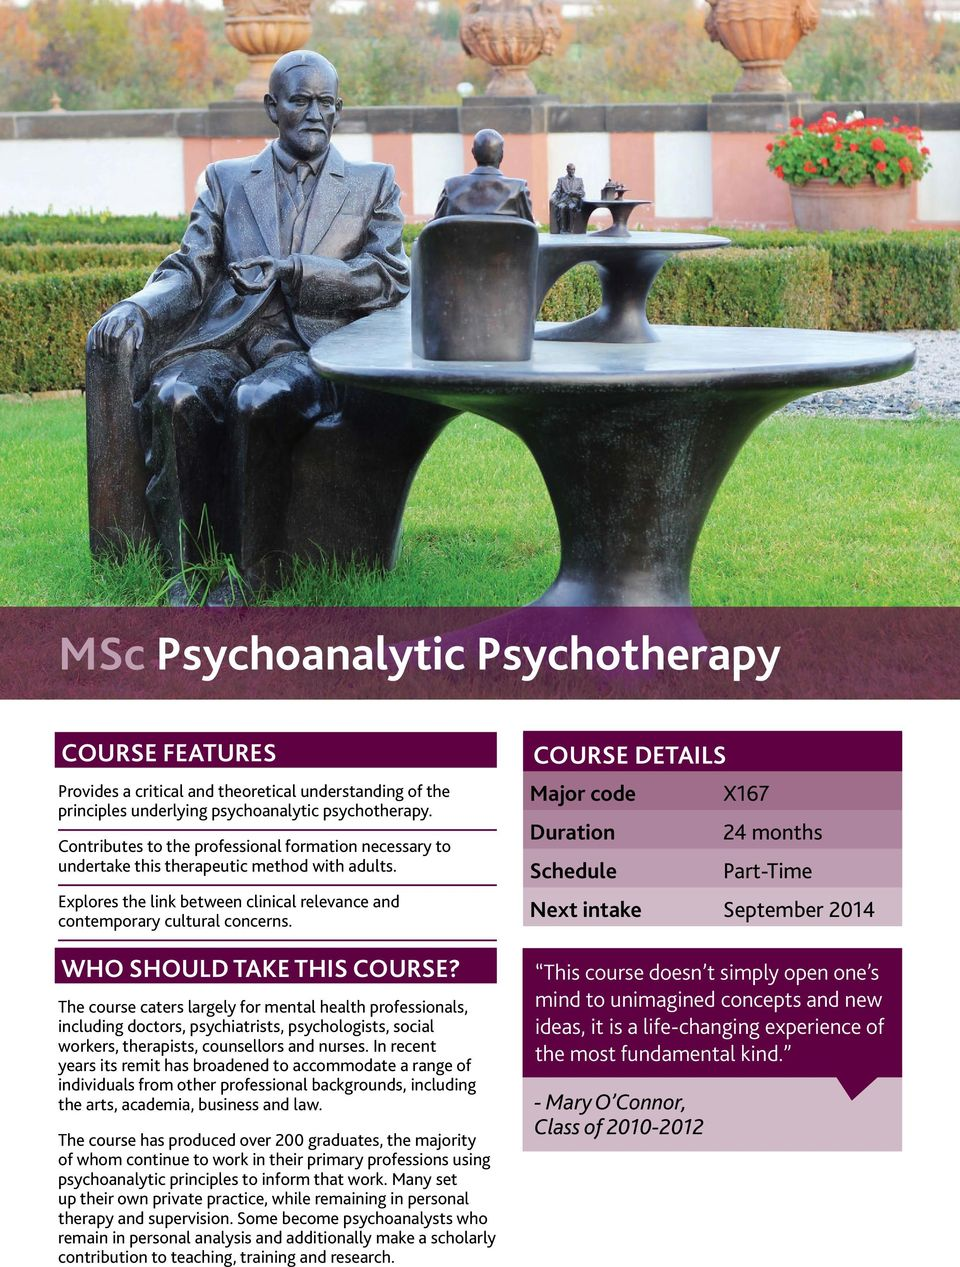 Who Should Take This Course? The course caters largely for mental health professionals, including doctors, psychiatrists, psychologists, social workers, therapists, counsellors and nurses.